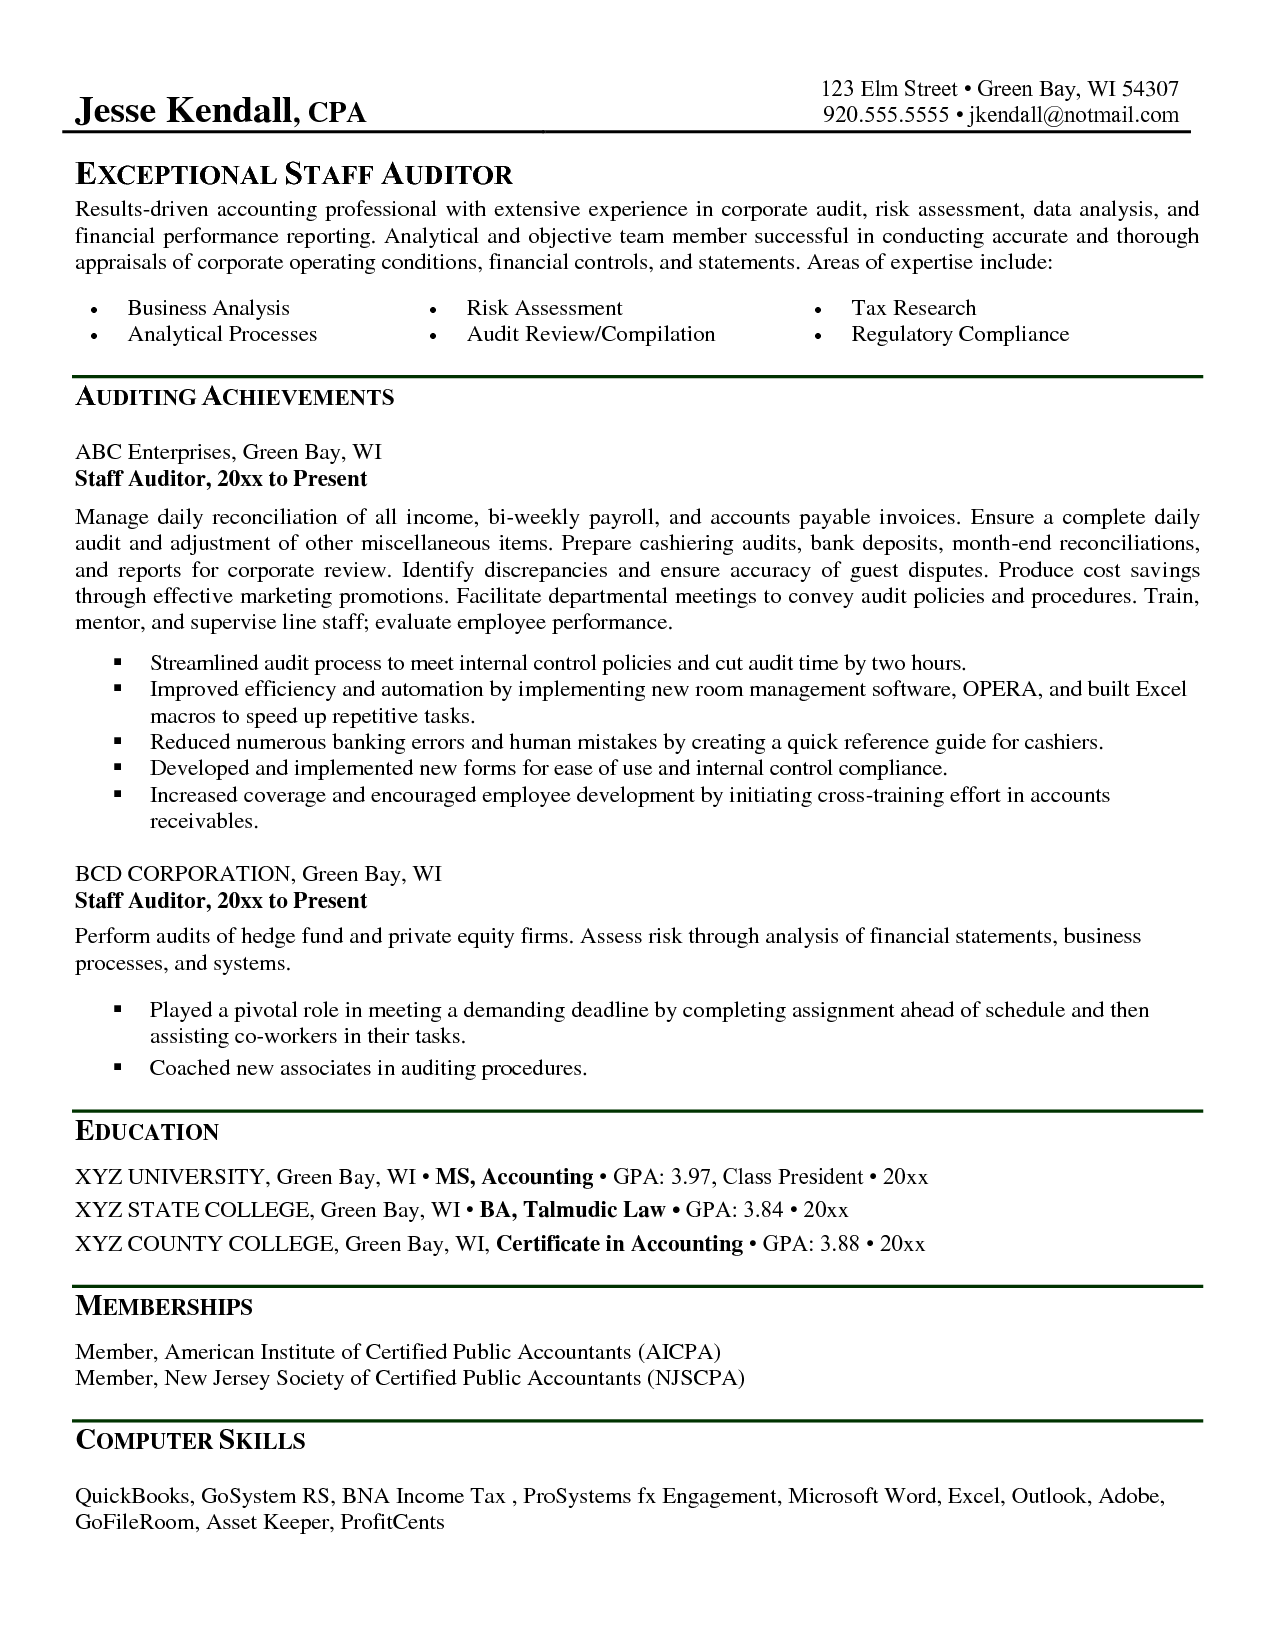 Auditor Resume Stay At Home Returning To Work Cover Letter2017 Applications